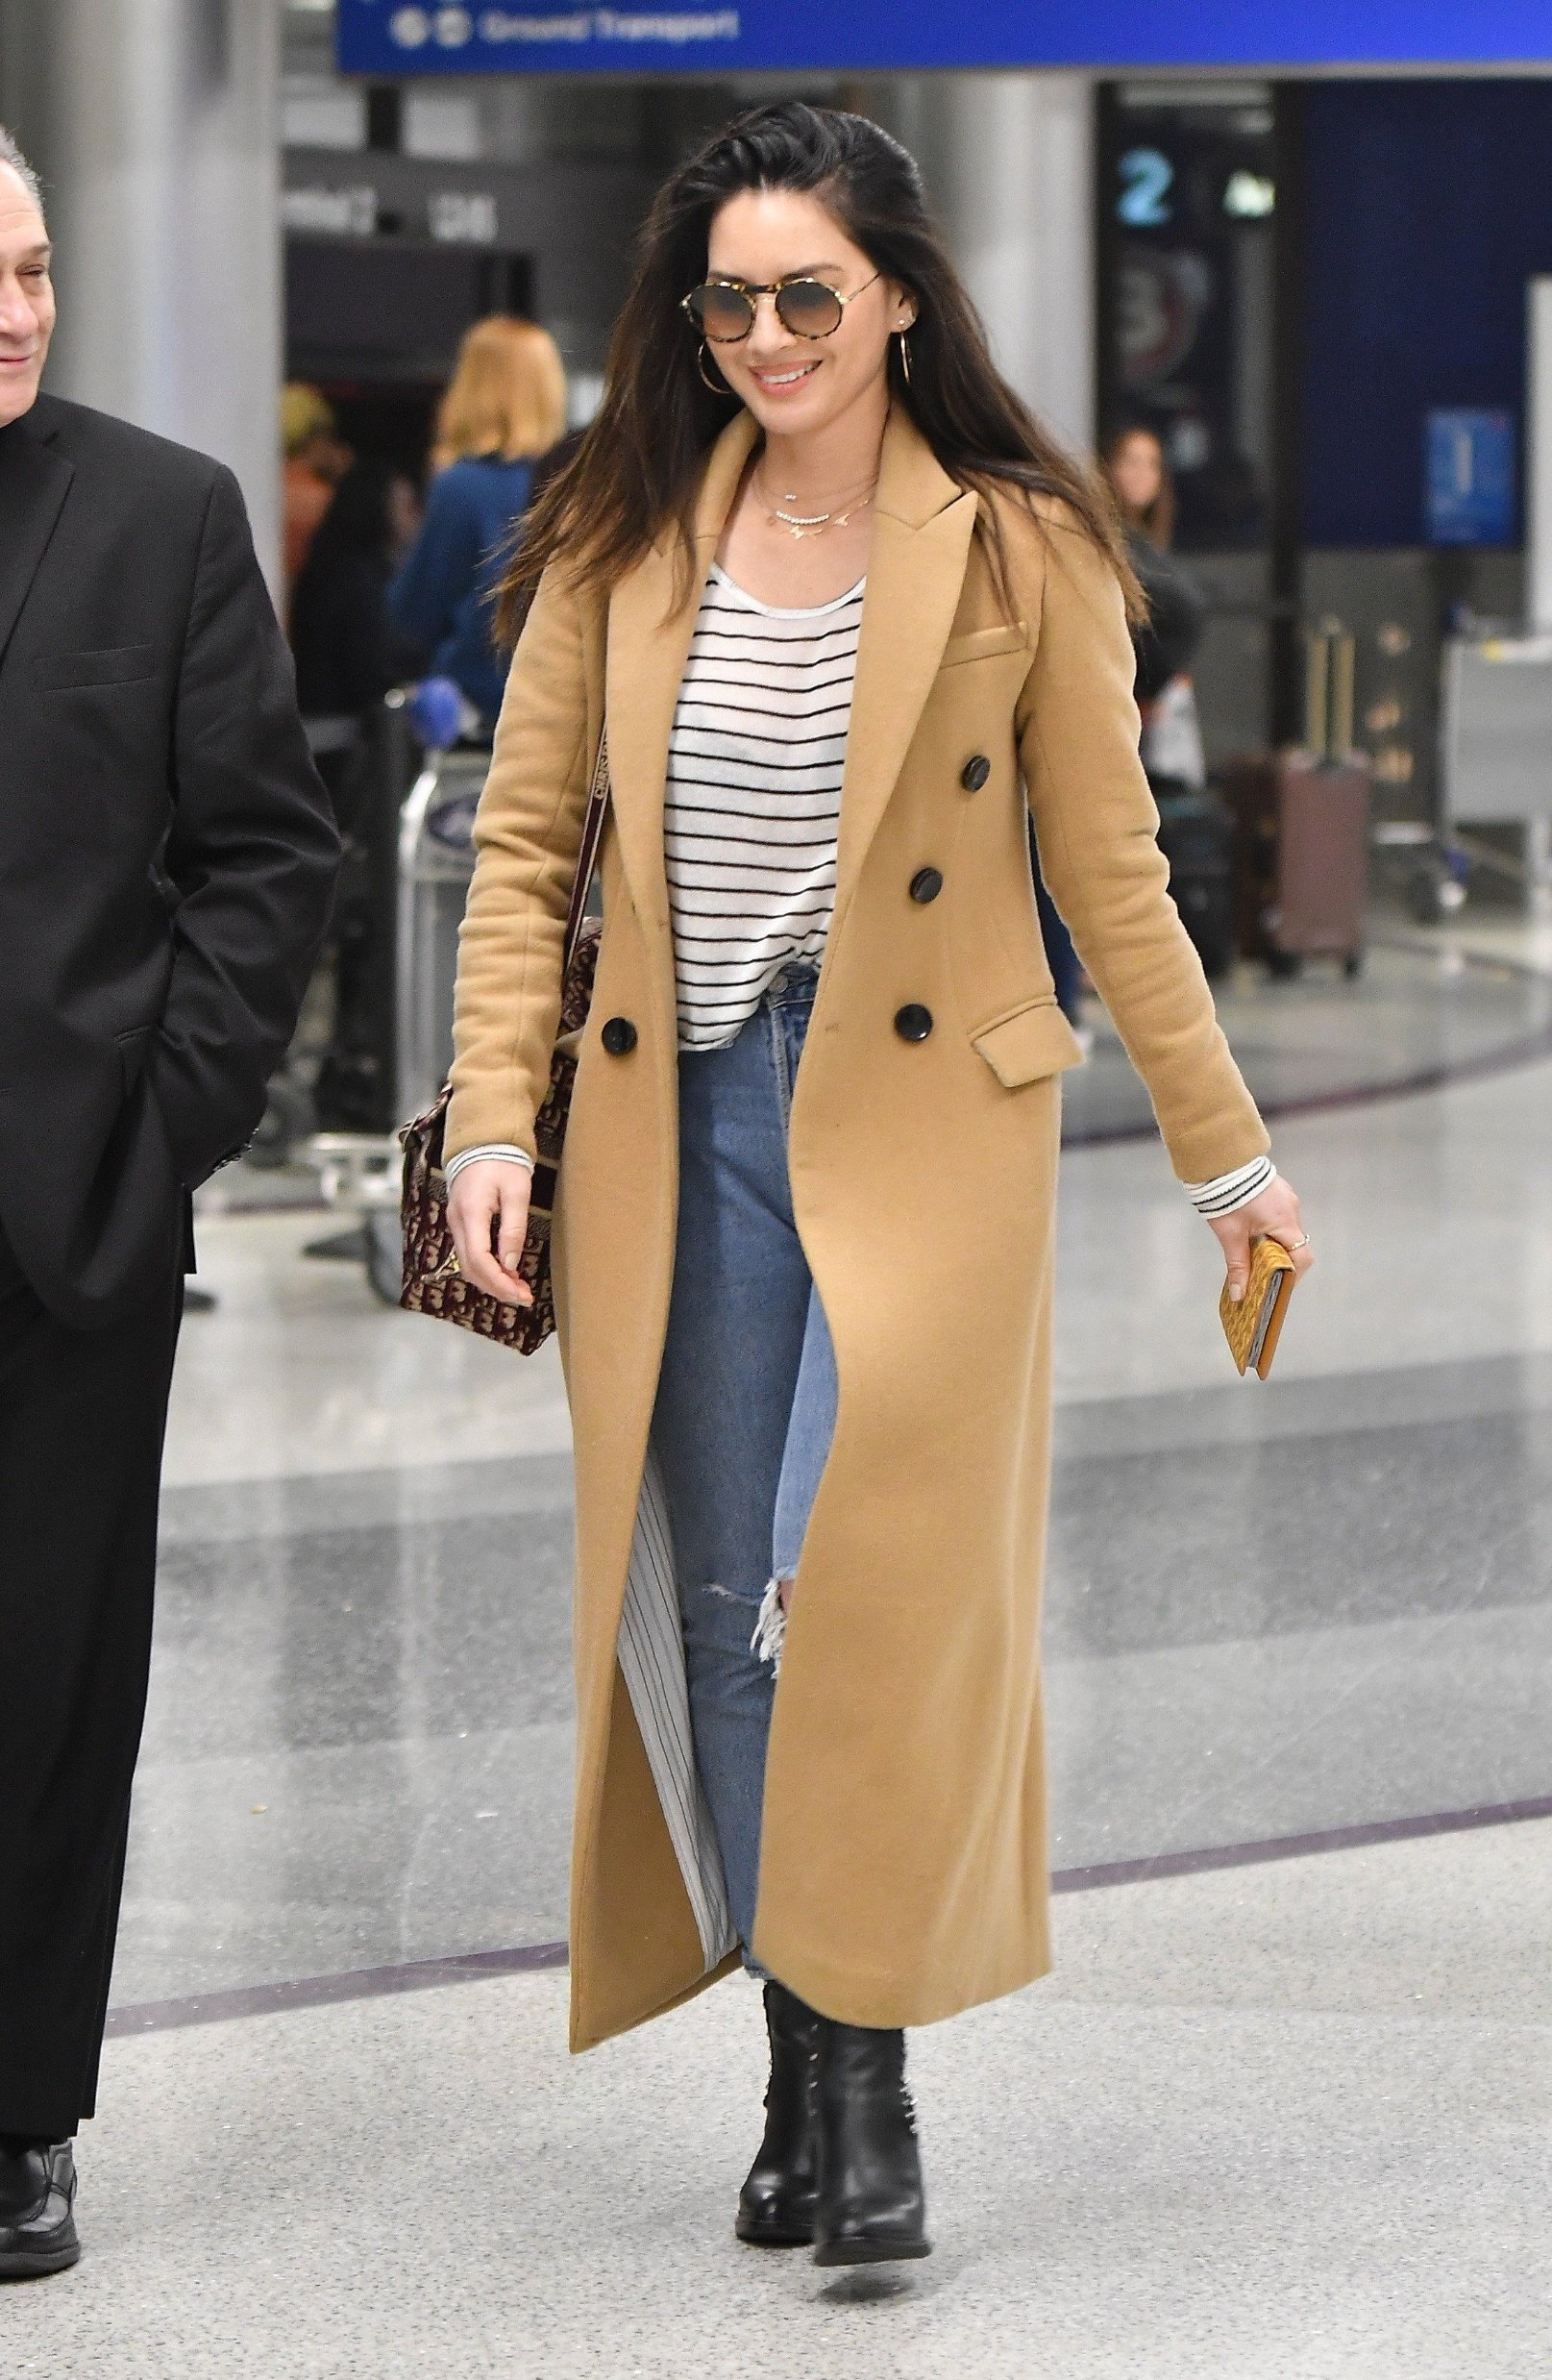 Olivia Munn leaving LAX airport. 26 Feb 2019, Image: 415990196, License: Rights-managed, Restrictions: World Rights, Model Release: no, Credit line: Profimedia, Mega Agency